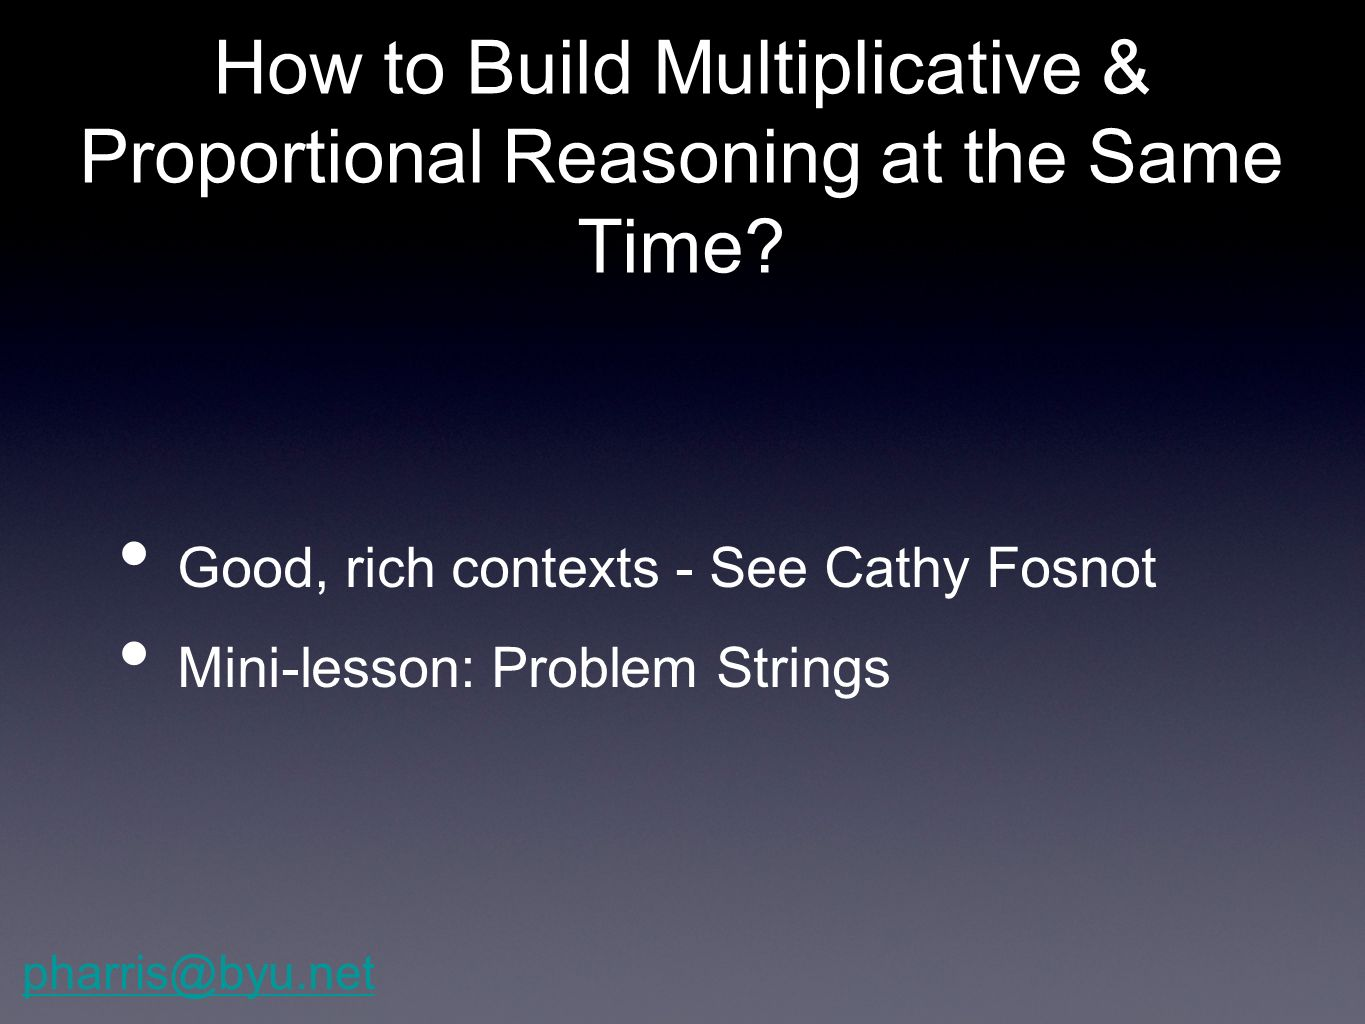 How to Build Multiplicative & Proportional Reasoning at the Same Time